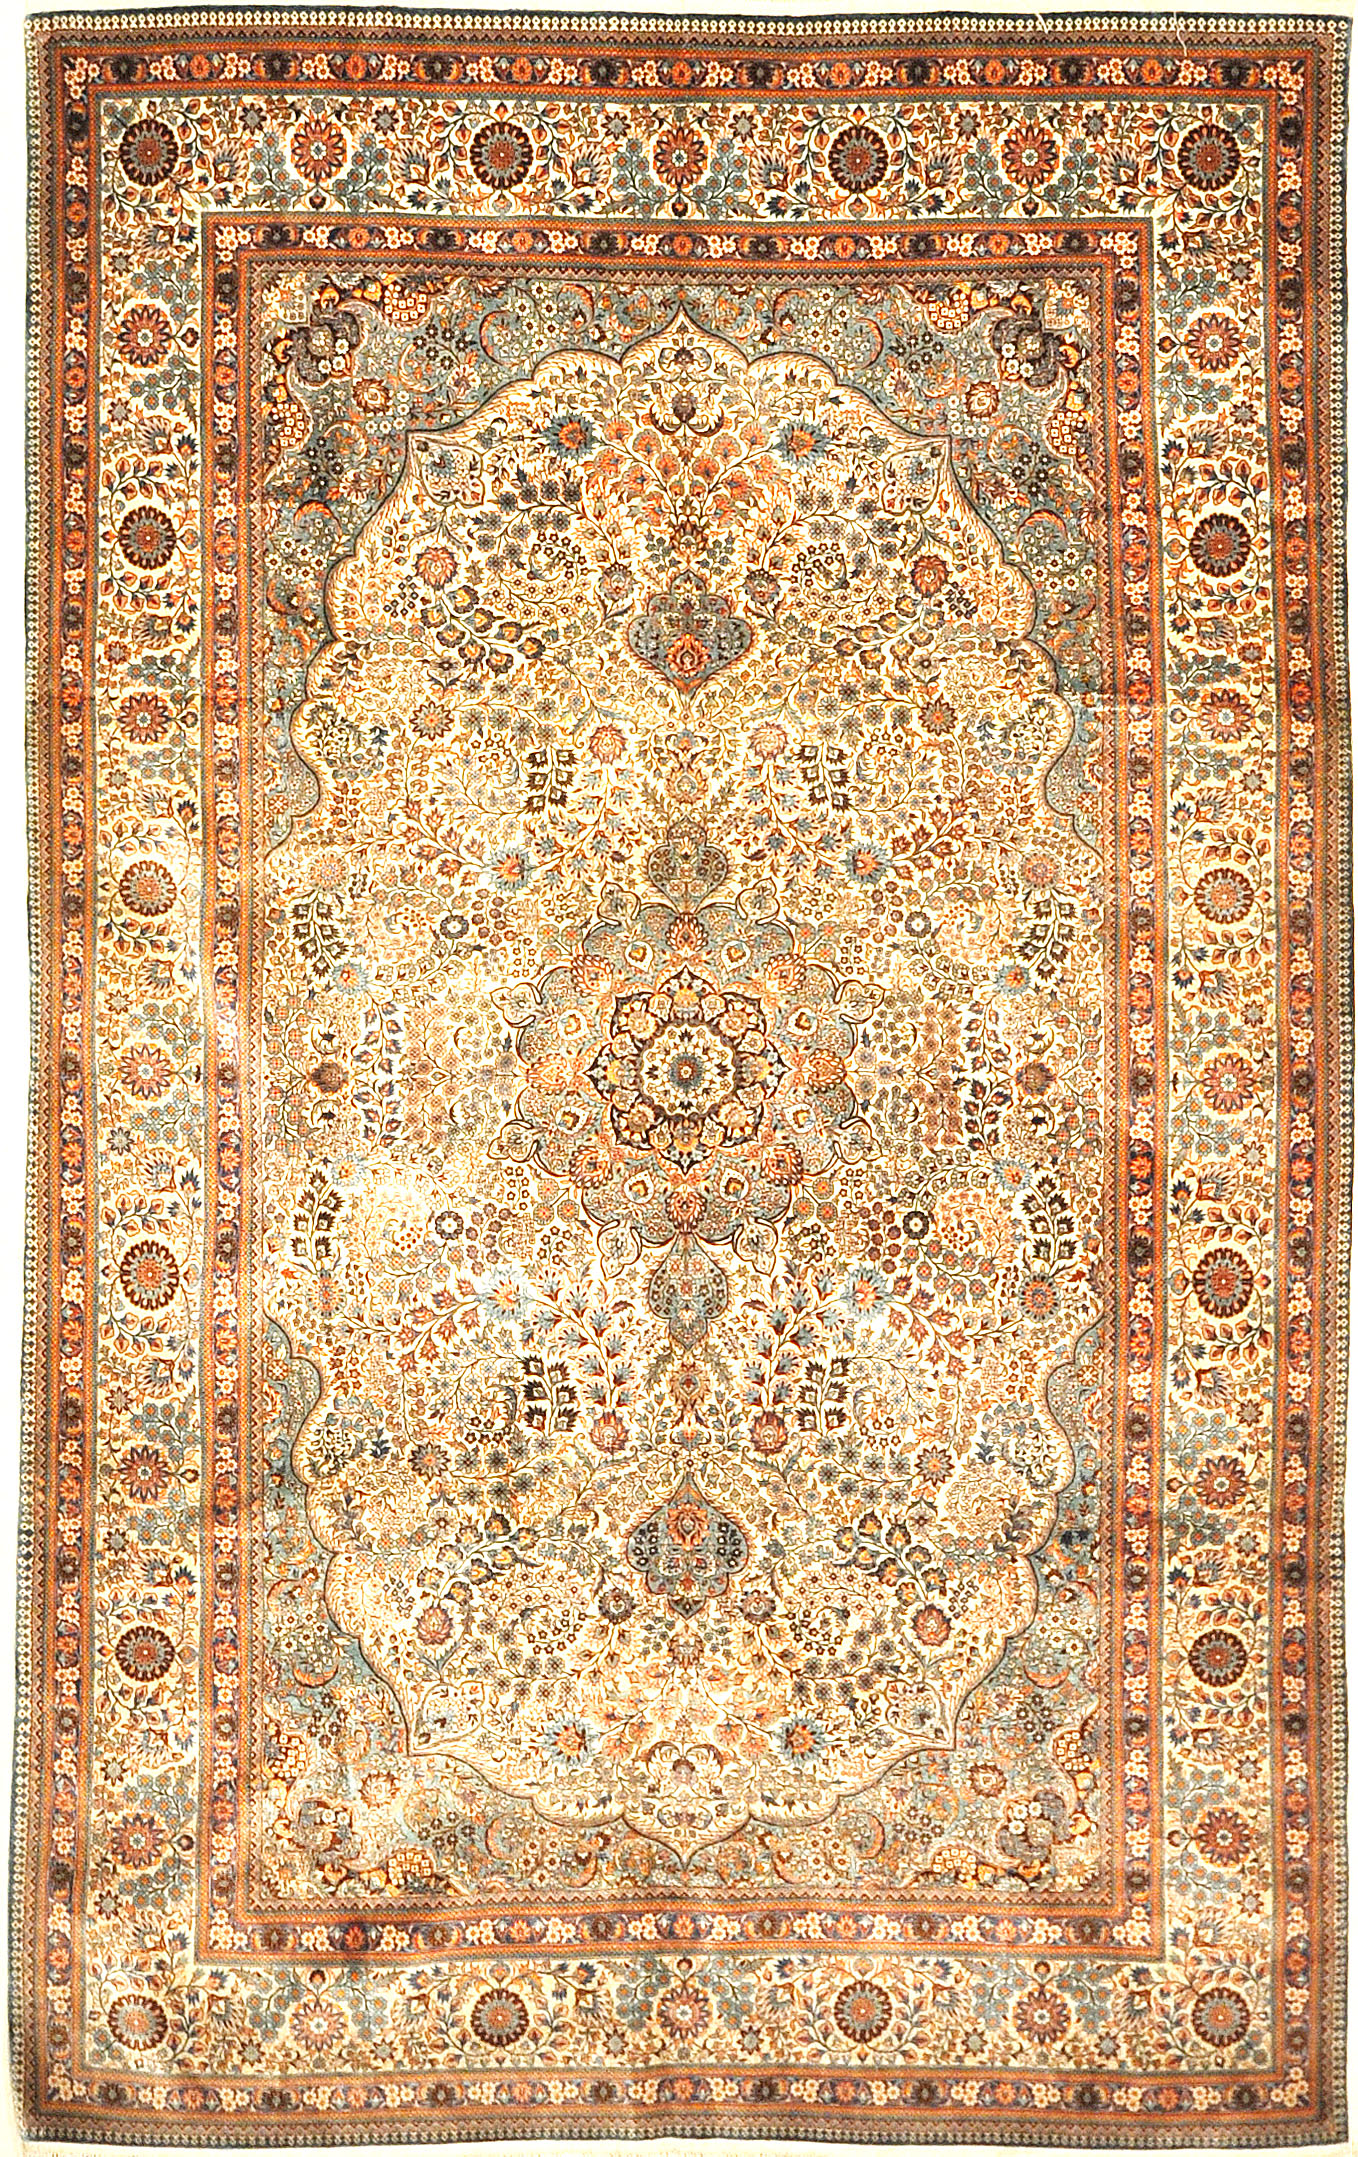 The finest antique finest silk rug in the world. A piece of genuine woven carpet art sold at Santa Barbara Design Center.